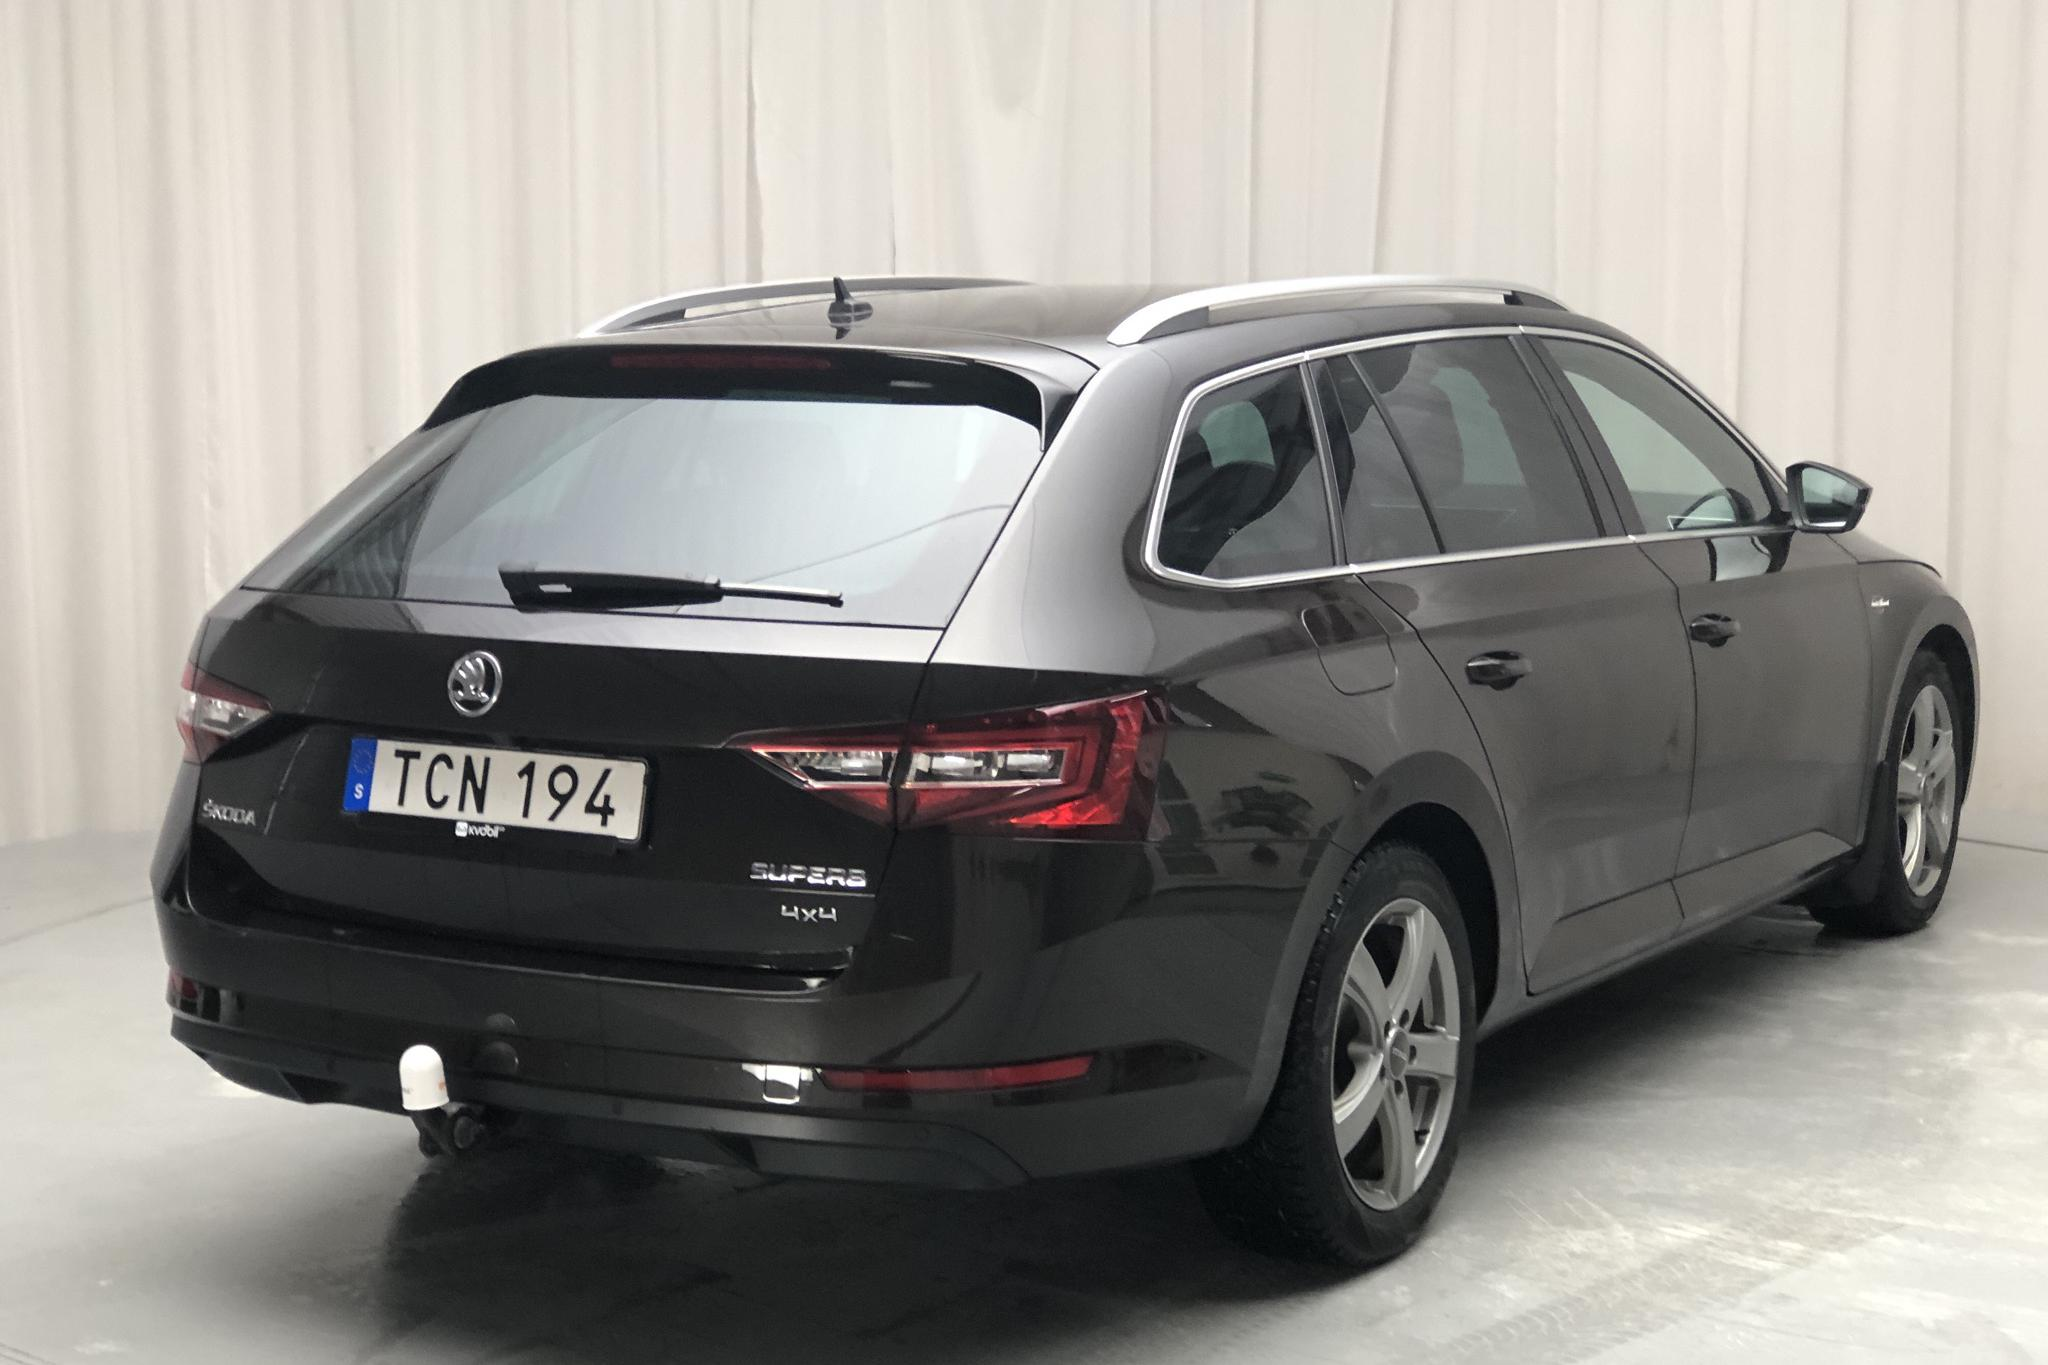 Skoda Superb 2.0 TDI 4x4 Kombi (190hk) - 70 100 km - Automatic - brown - 2018